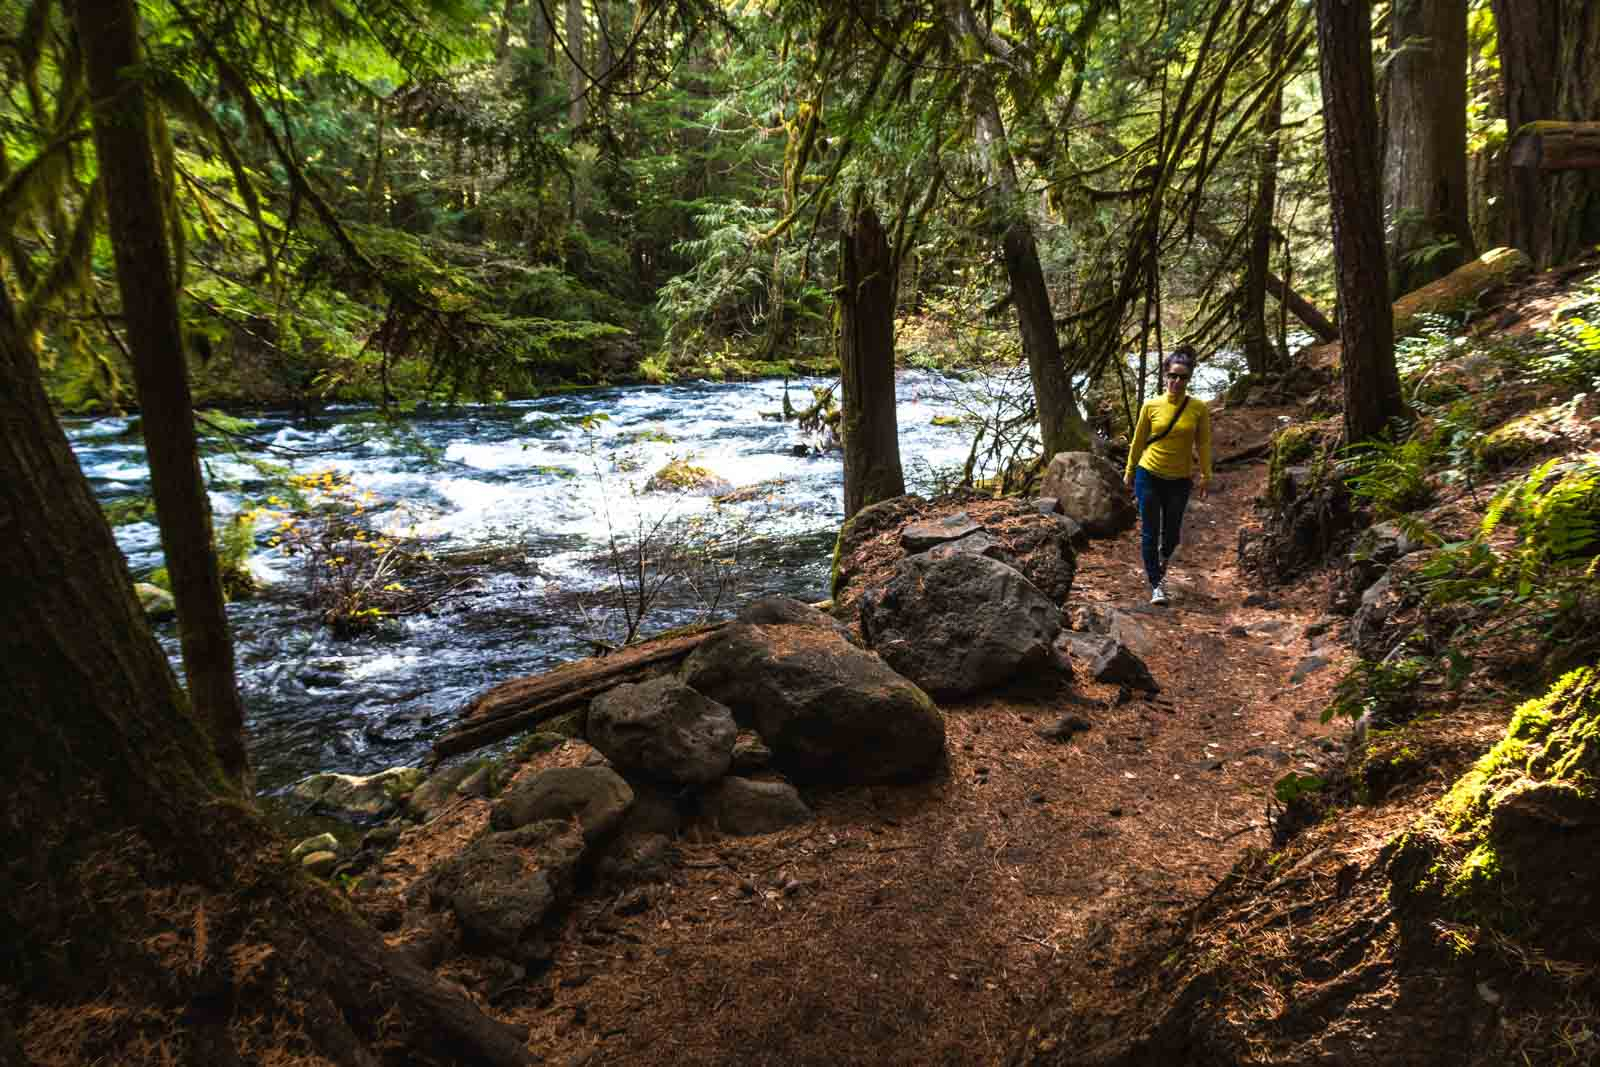 Blue Pool hike trail is a popular things to do in Oregon